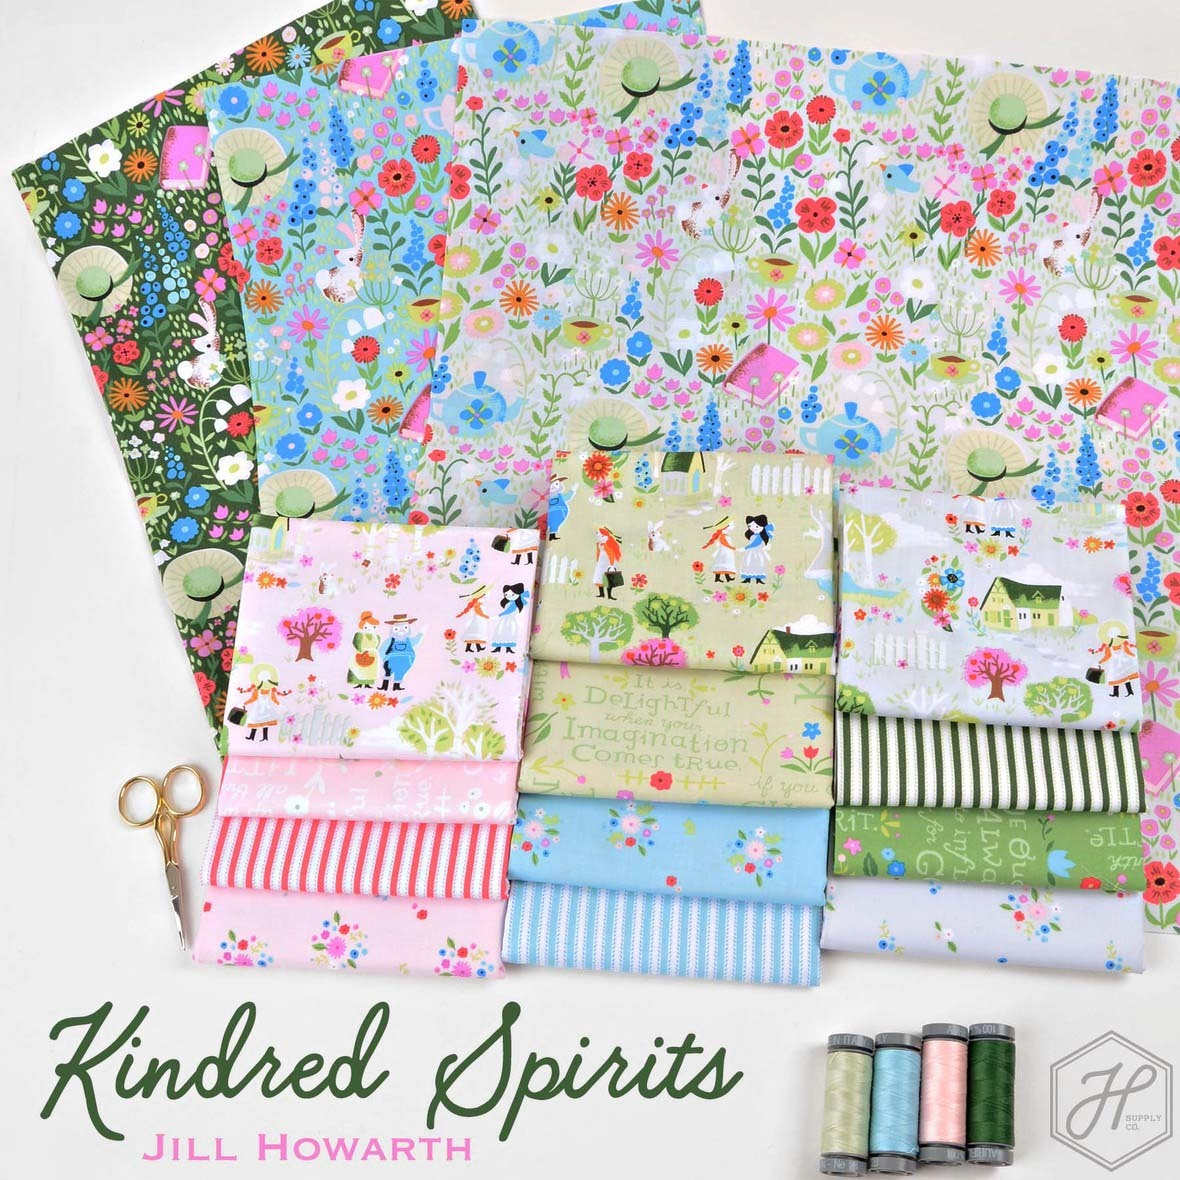 Kindred Spirits Fabric Jill Howarth at Hawthorne Supply Co